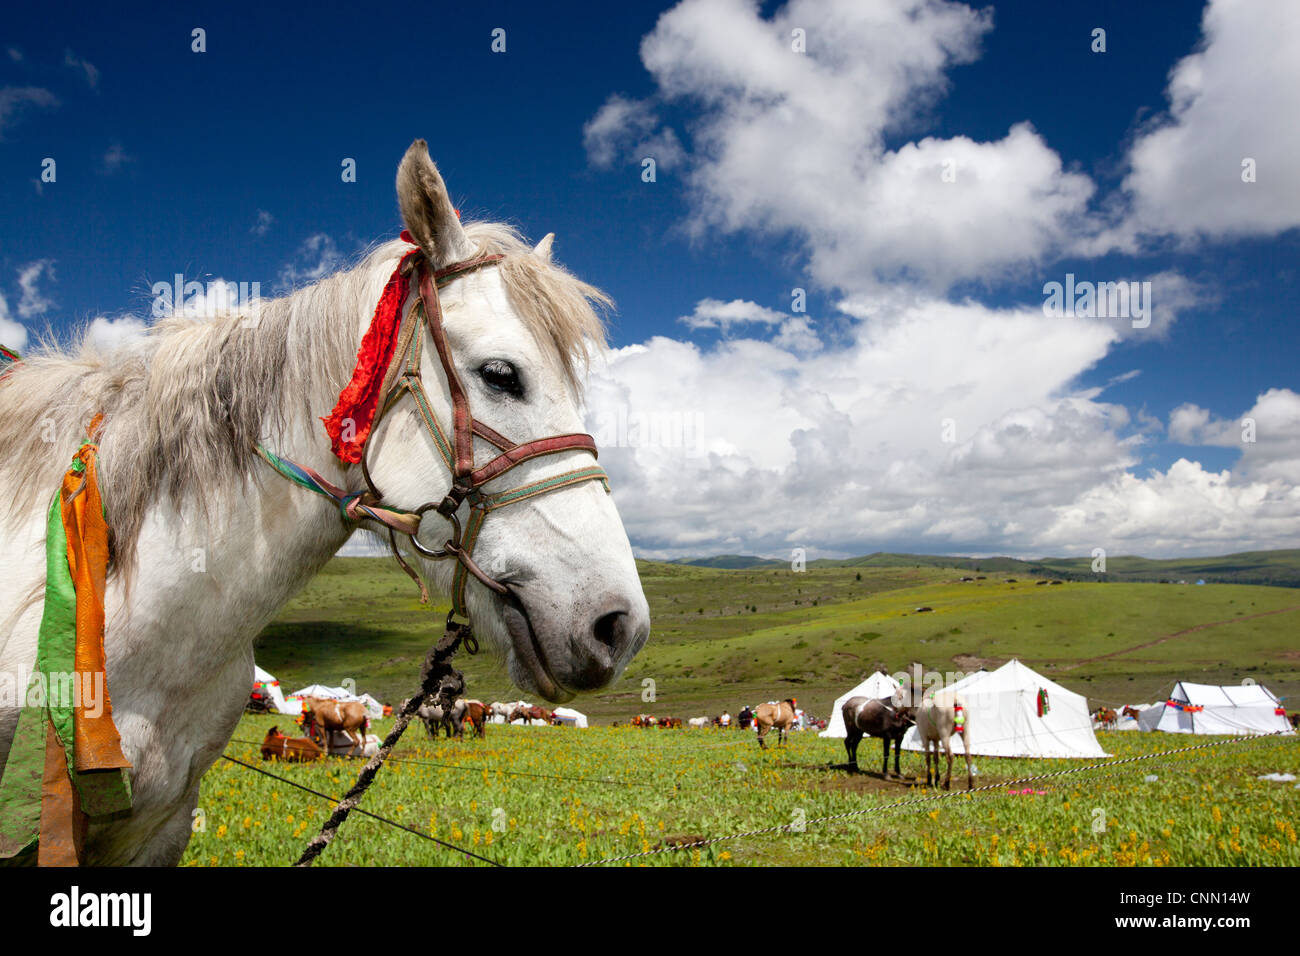 Fête du cheval blanc La montagne secrète Tagong salon western Chine Asie Tibet Photo Stock